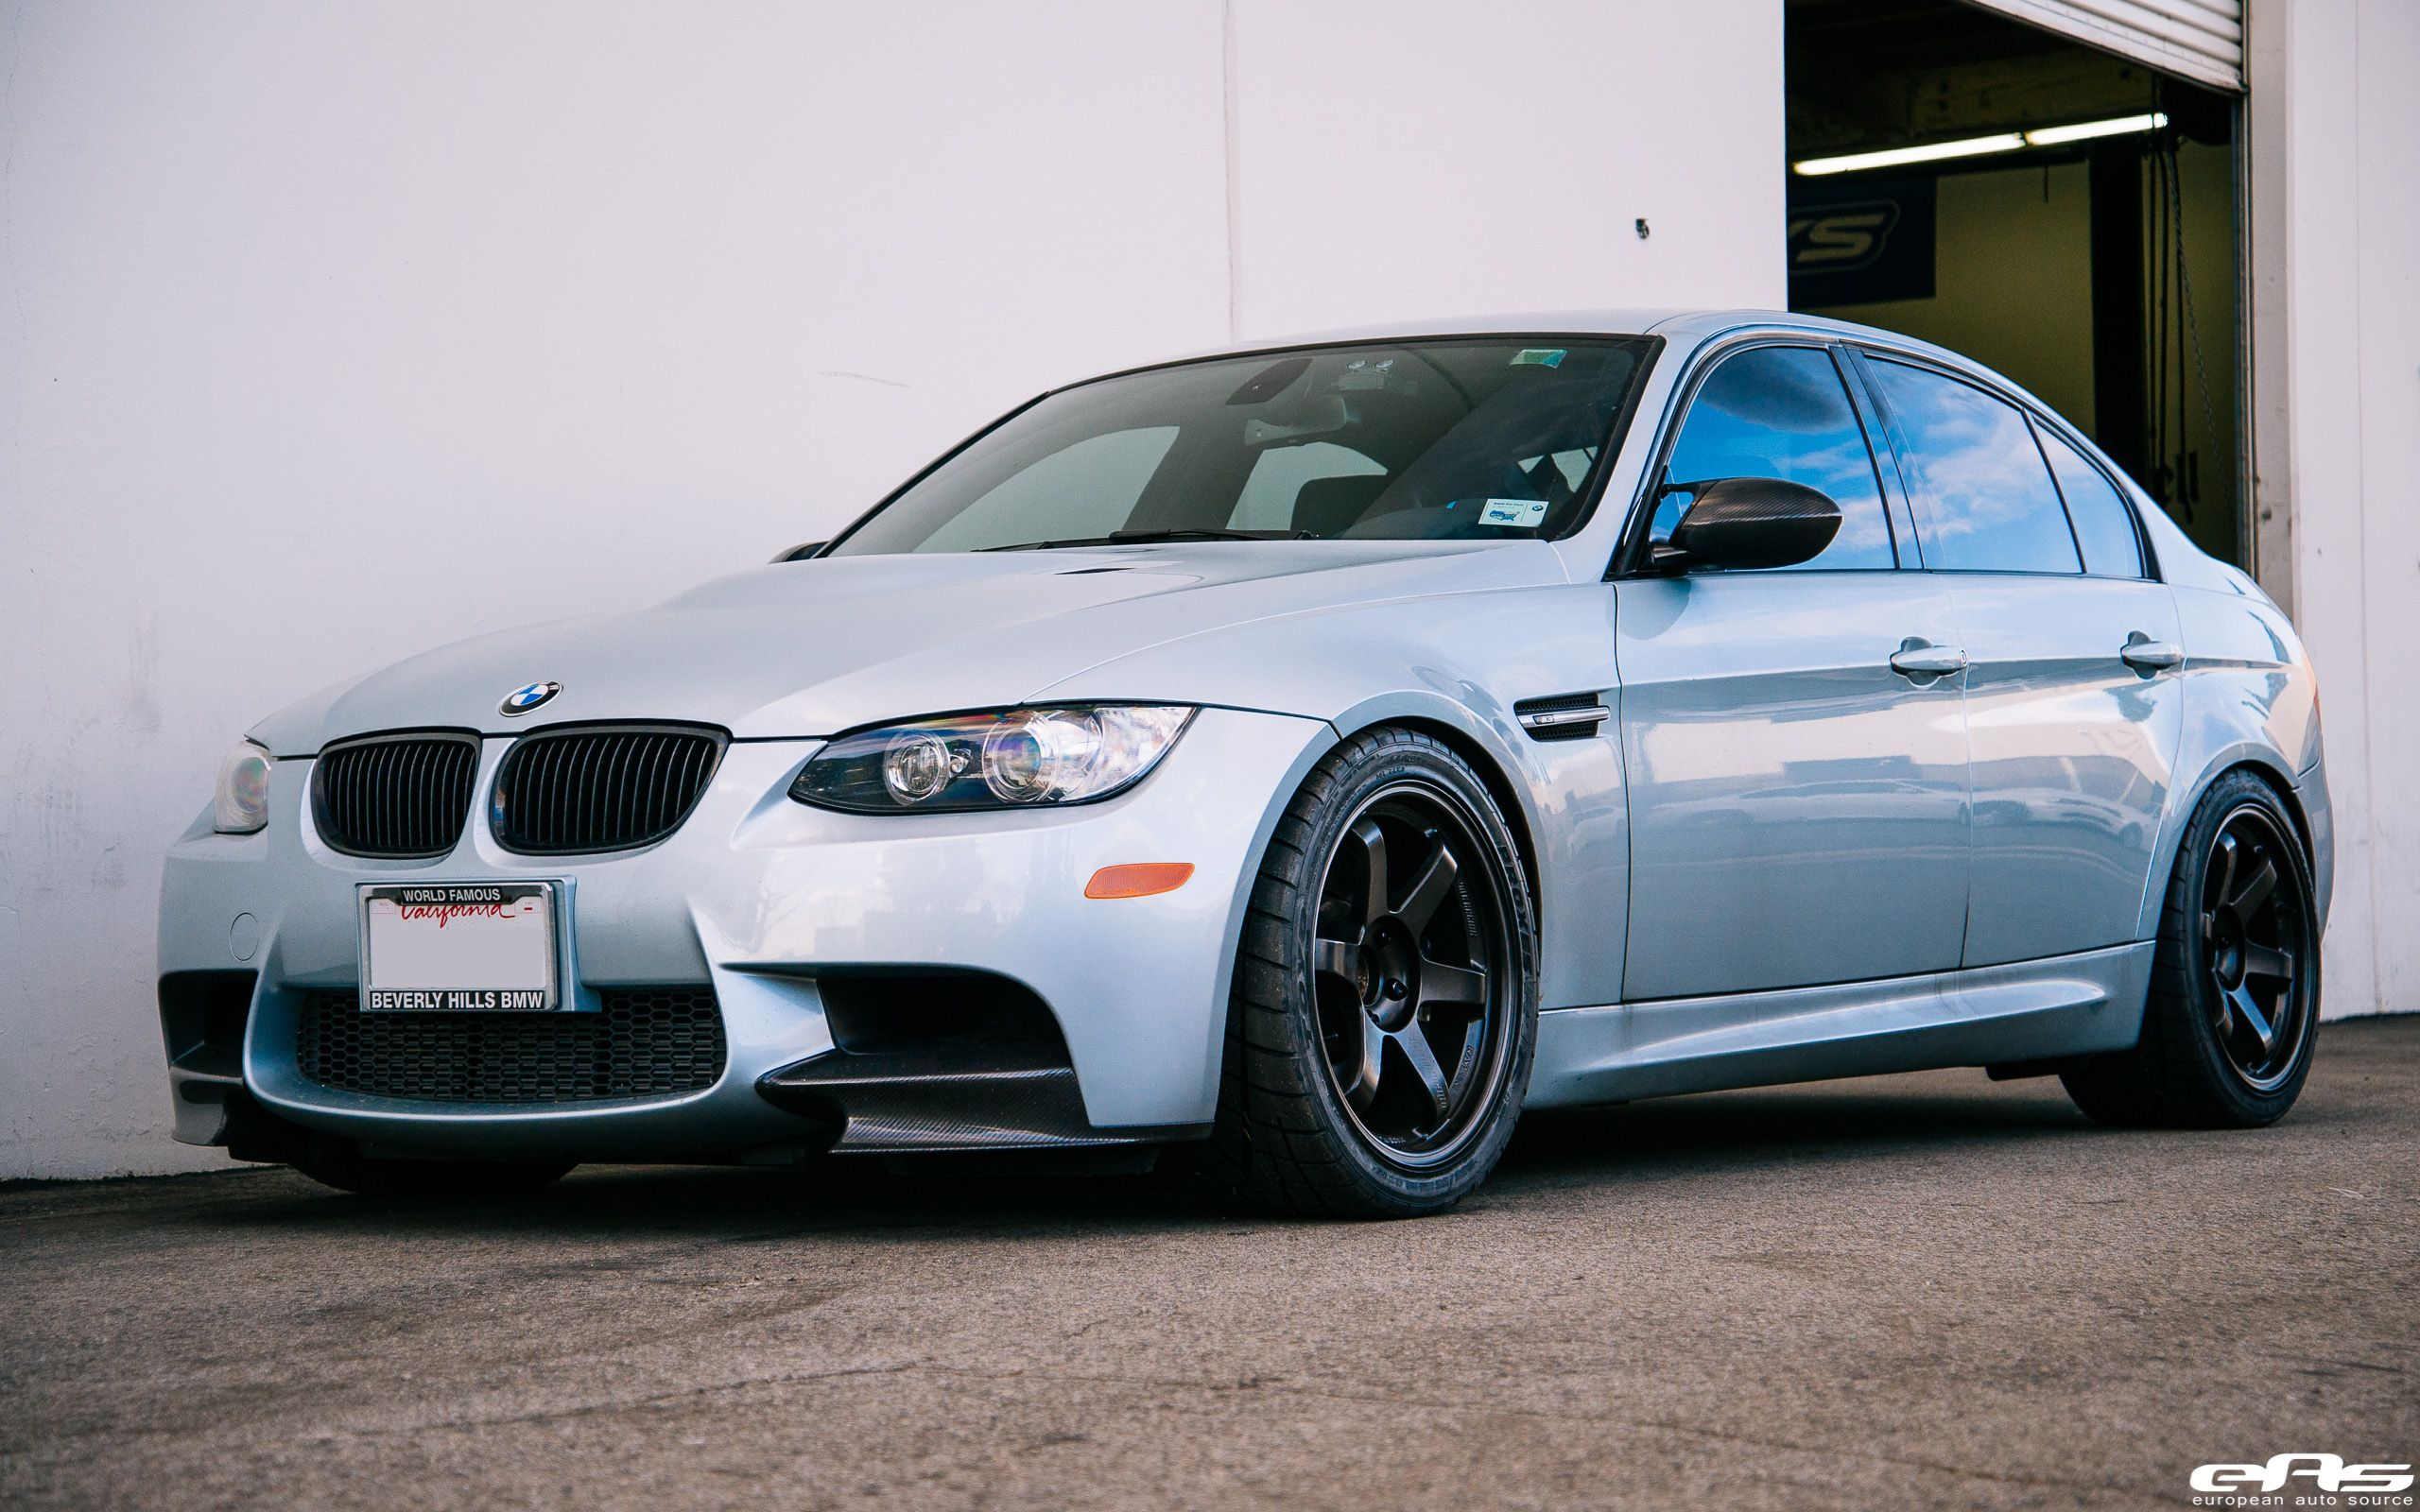 Photoshoot: A JDM Style BMW E90 M3 Project    Http://www.bmwblog.com/2017/05/06/photoshoot A Jdm Style Bmw E90 M3 Project/